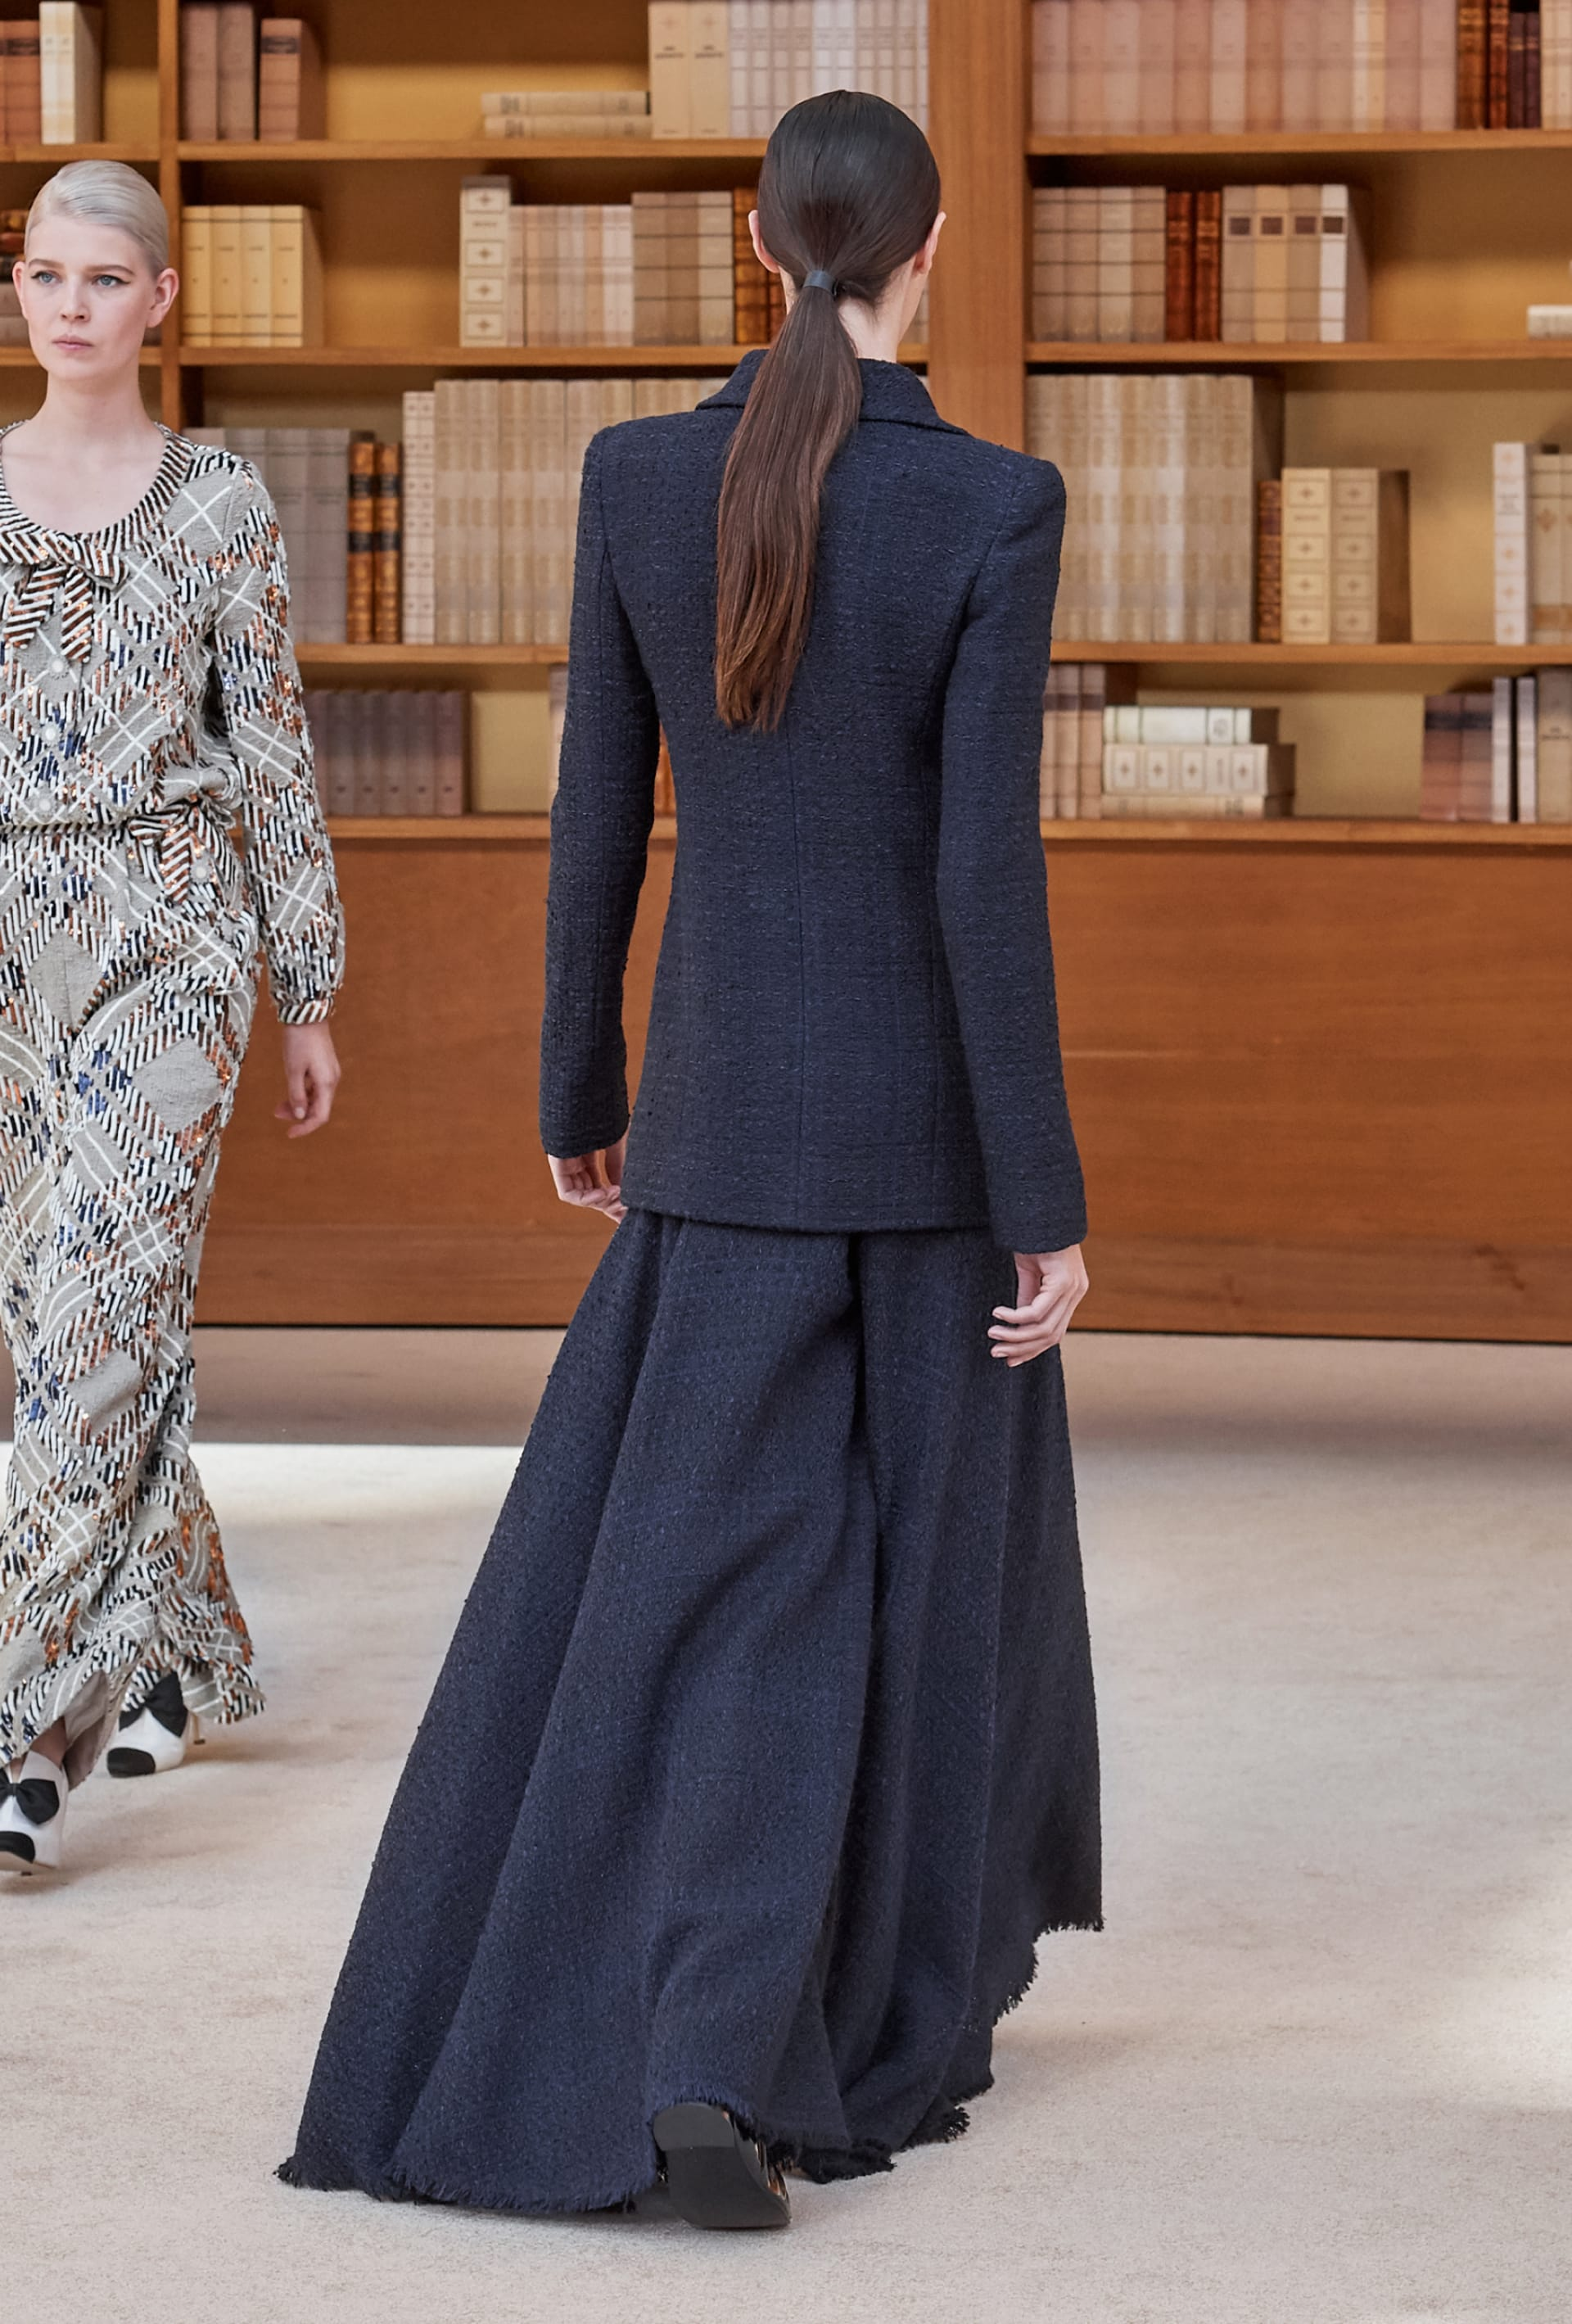 View 5 - Look 15 - Fall-Winter 2019/20 Haute-Couture - 查看全尺寸版本